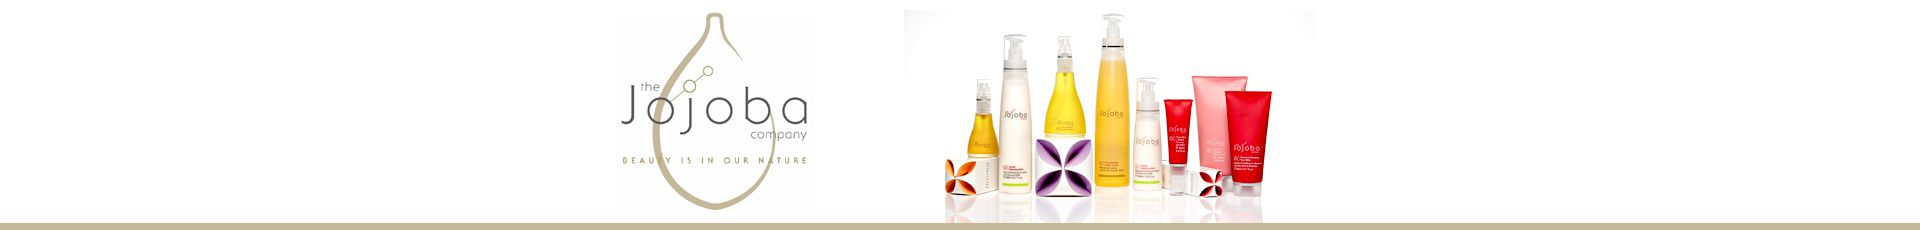 the jojoba company